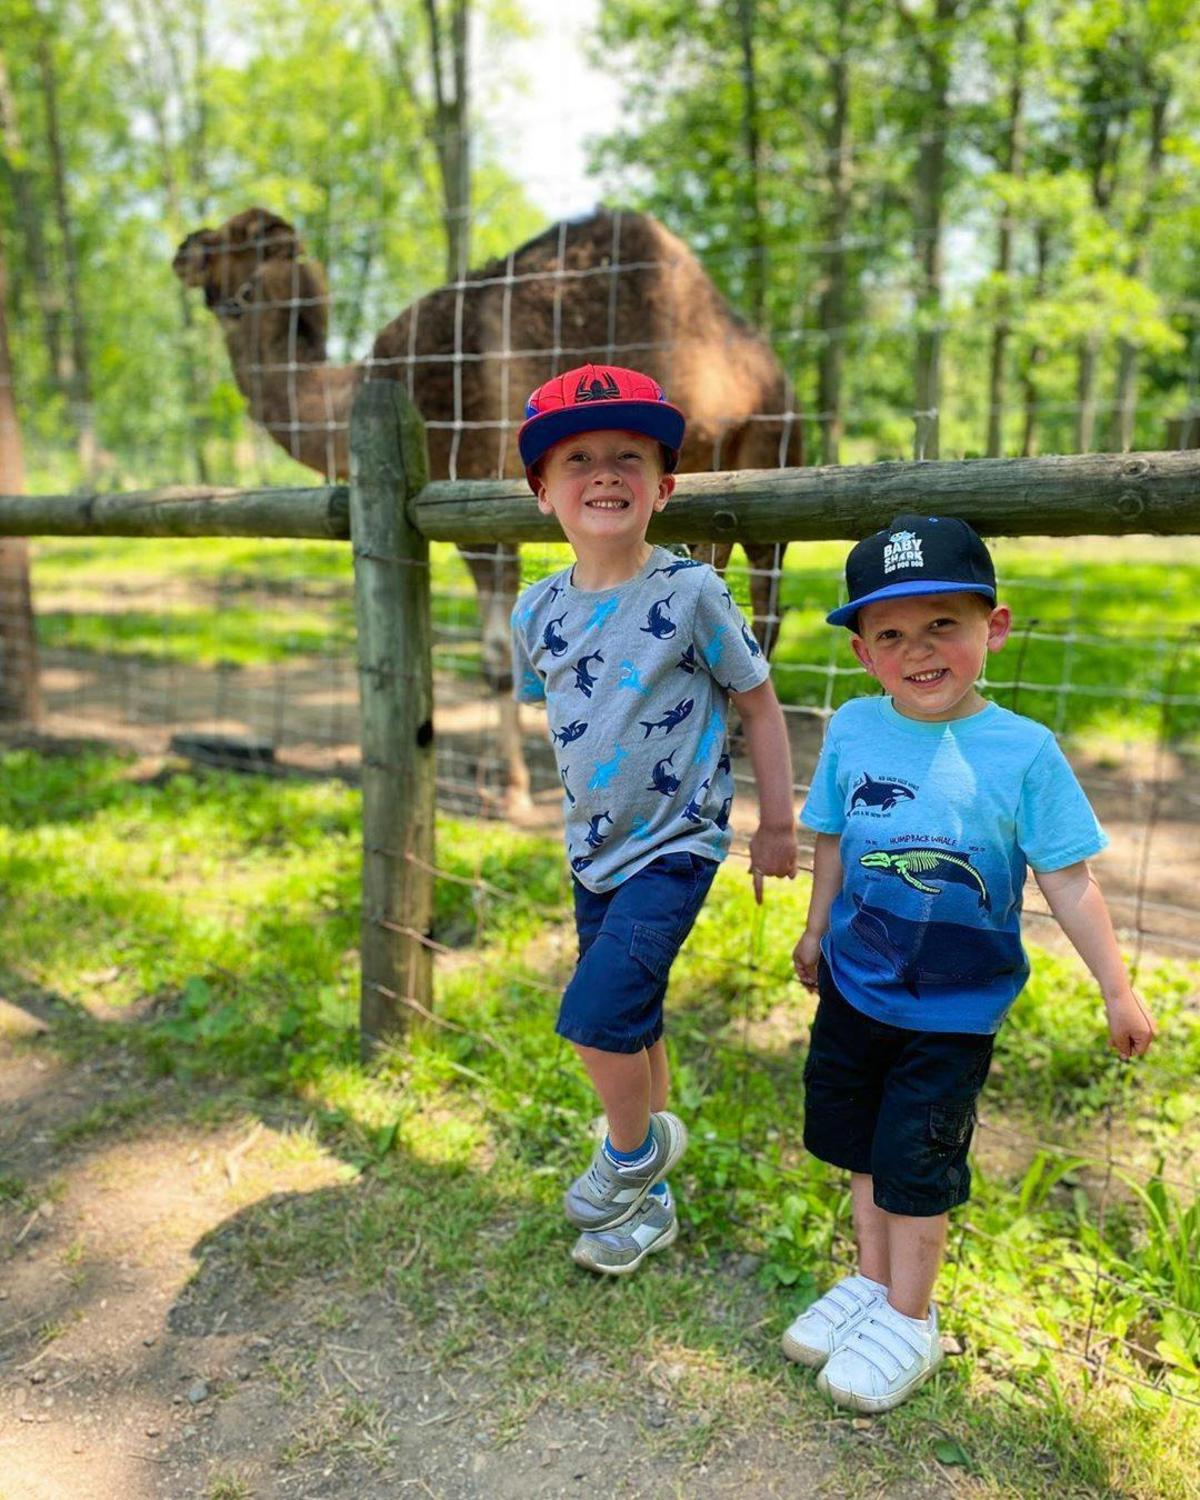 Two young boys smiling in front of a camel at Wilderness Trails Zoo in Birch Run